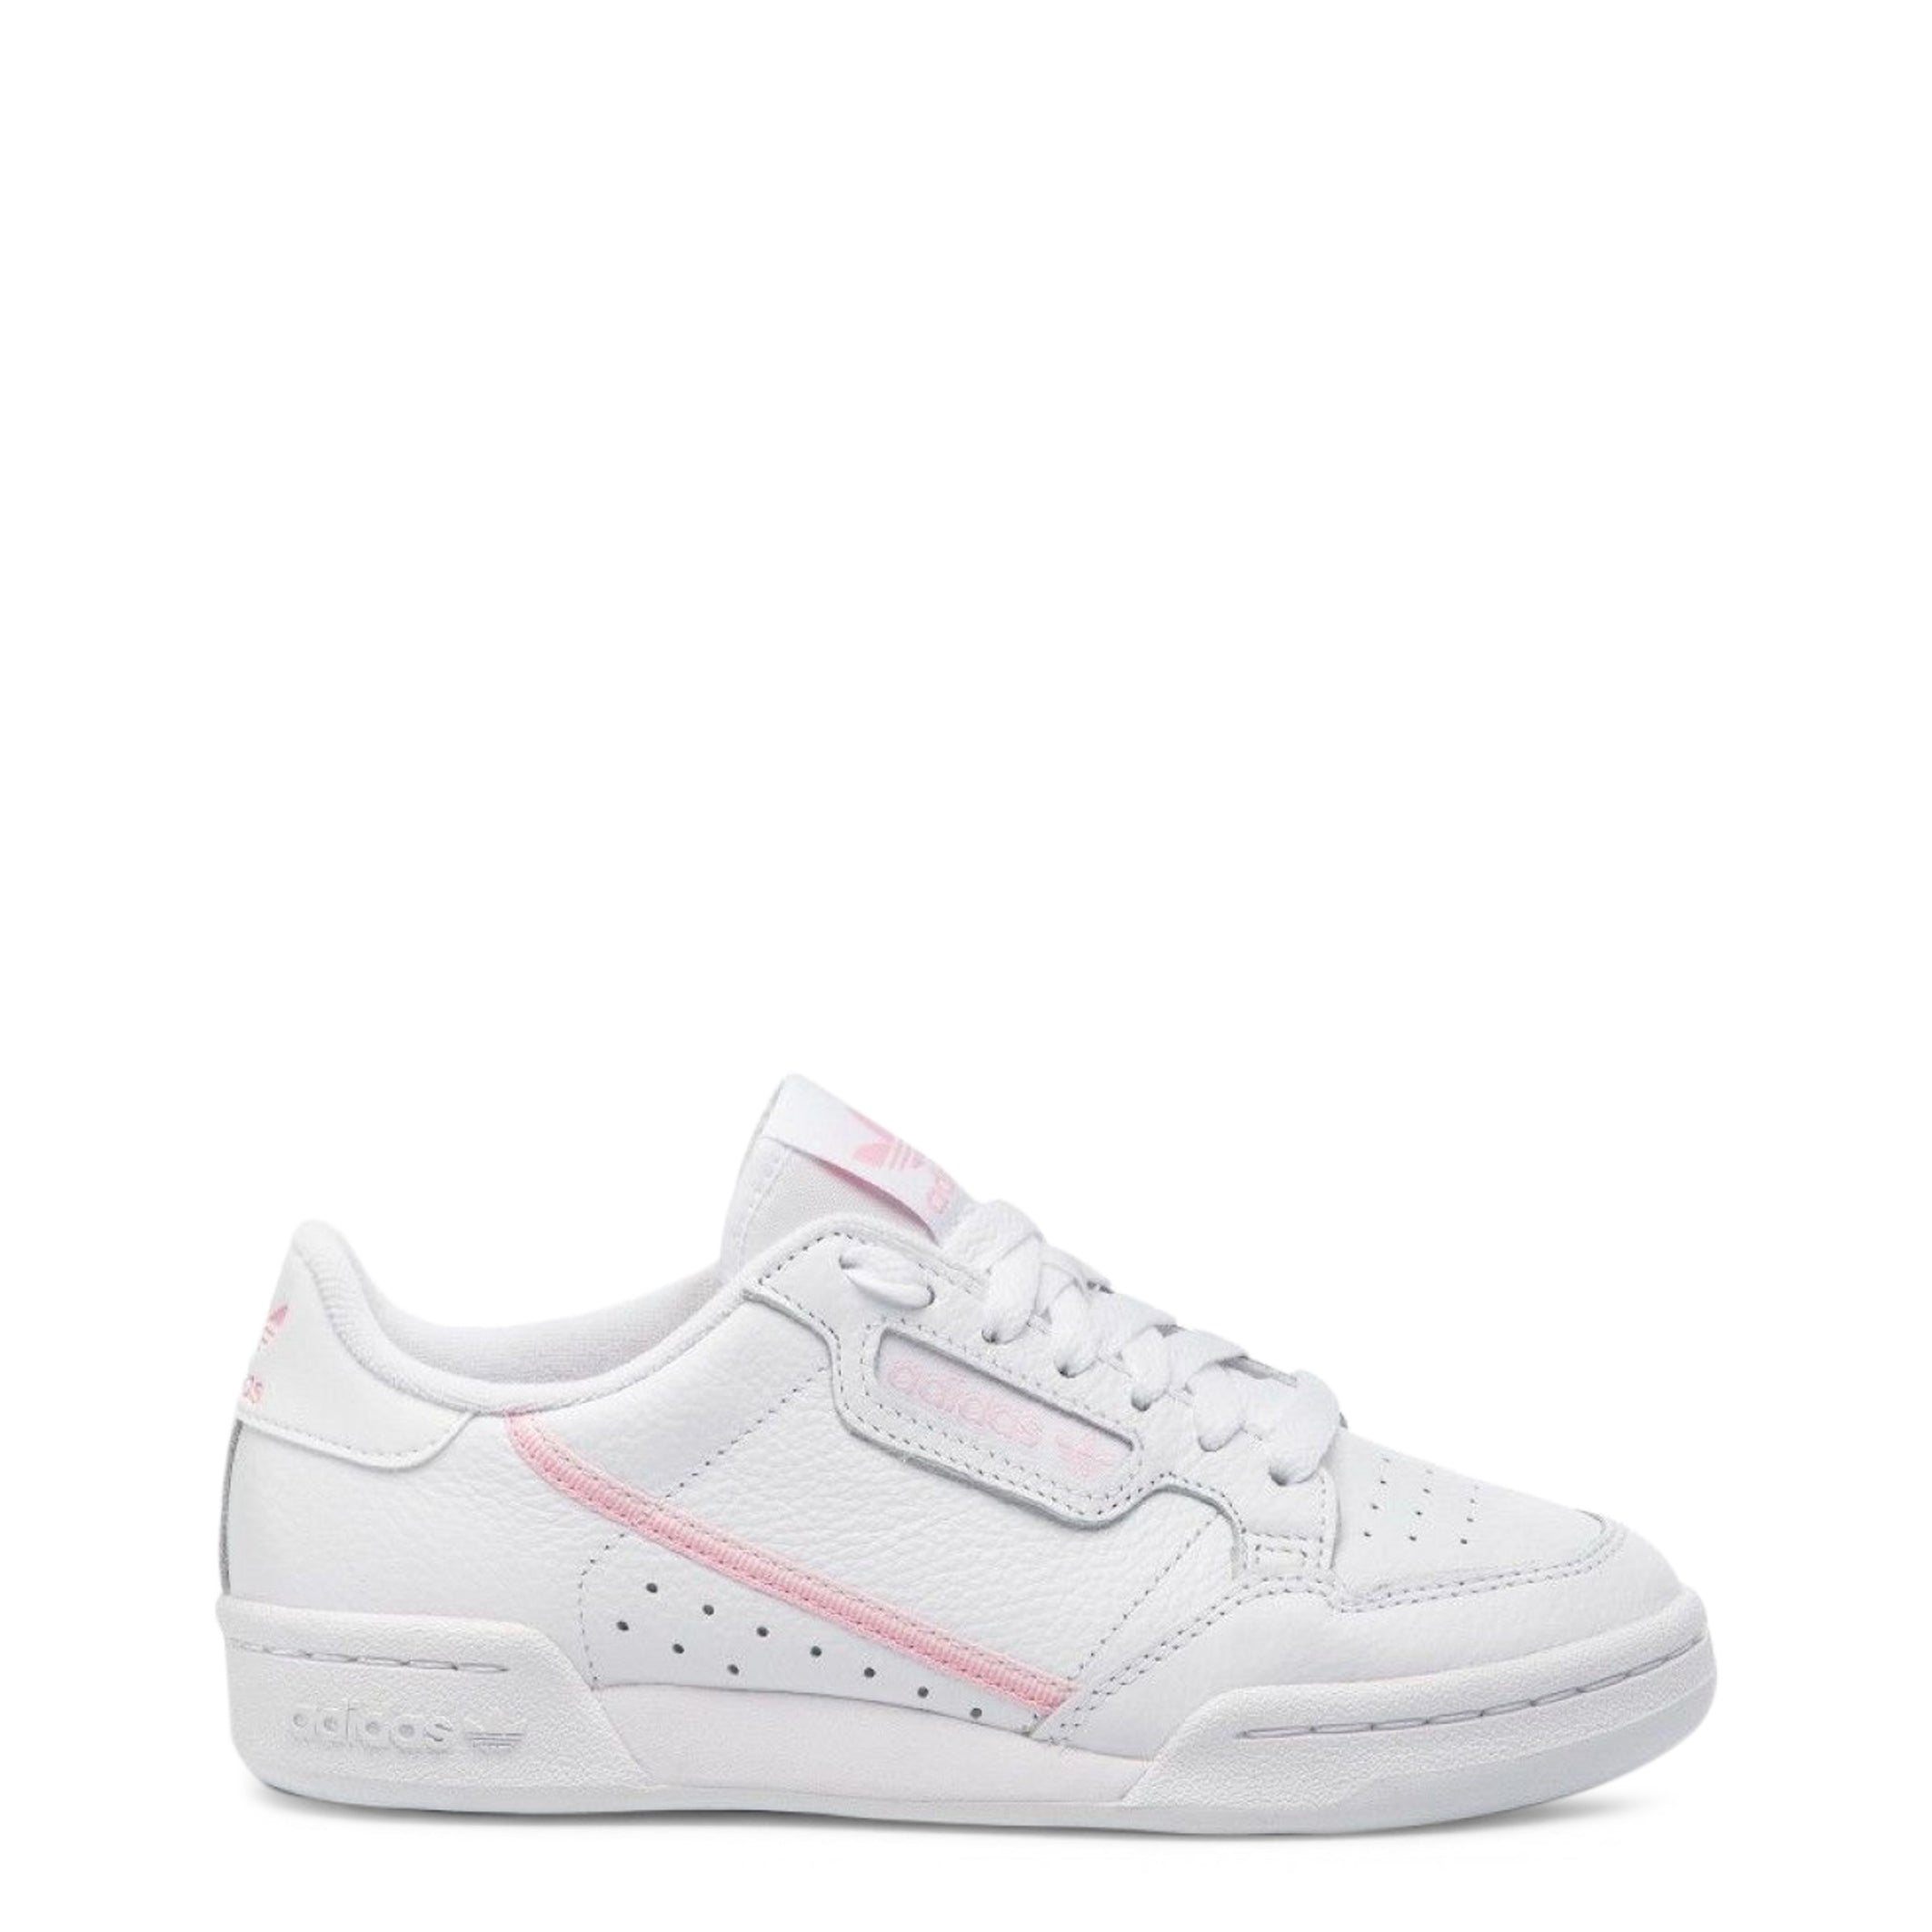 Adidas - Continental80 - Unisex Sneakers